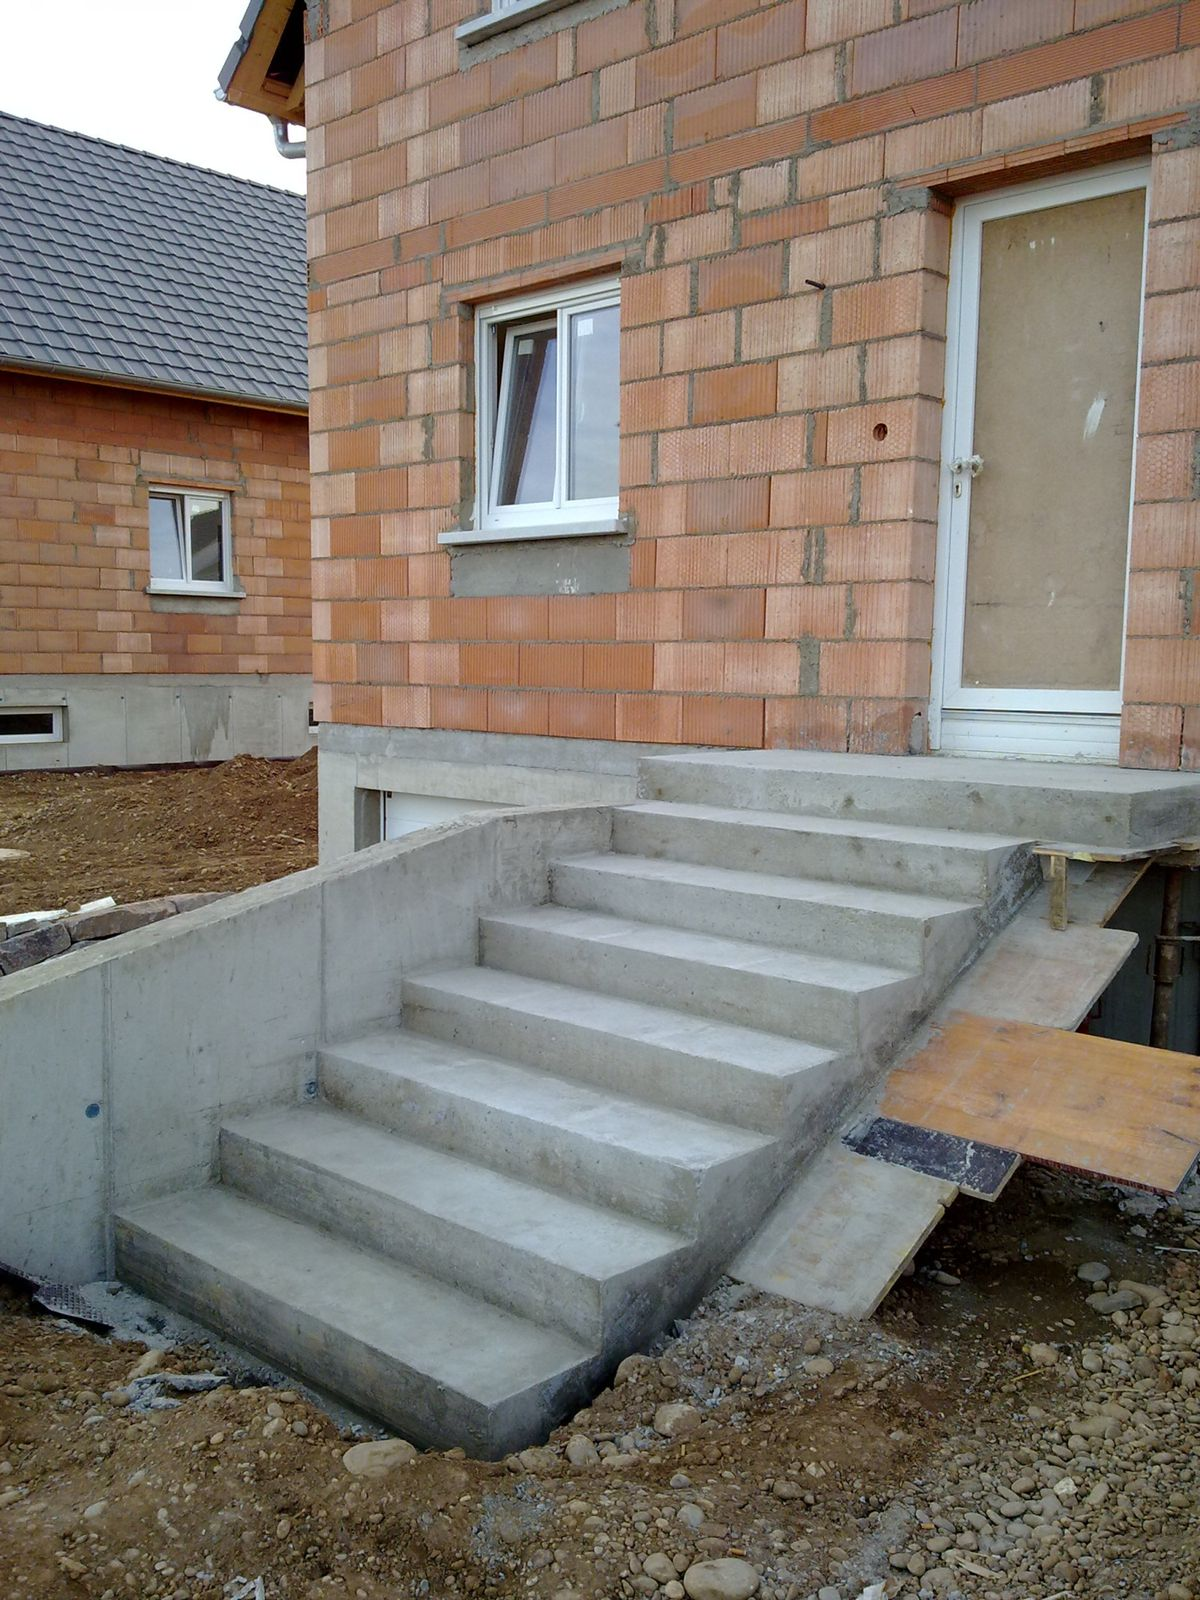 D coffrage escalier ext rieur j 206 la construction de for Construction escalier exterieur